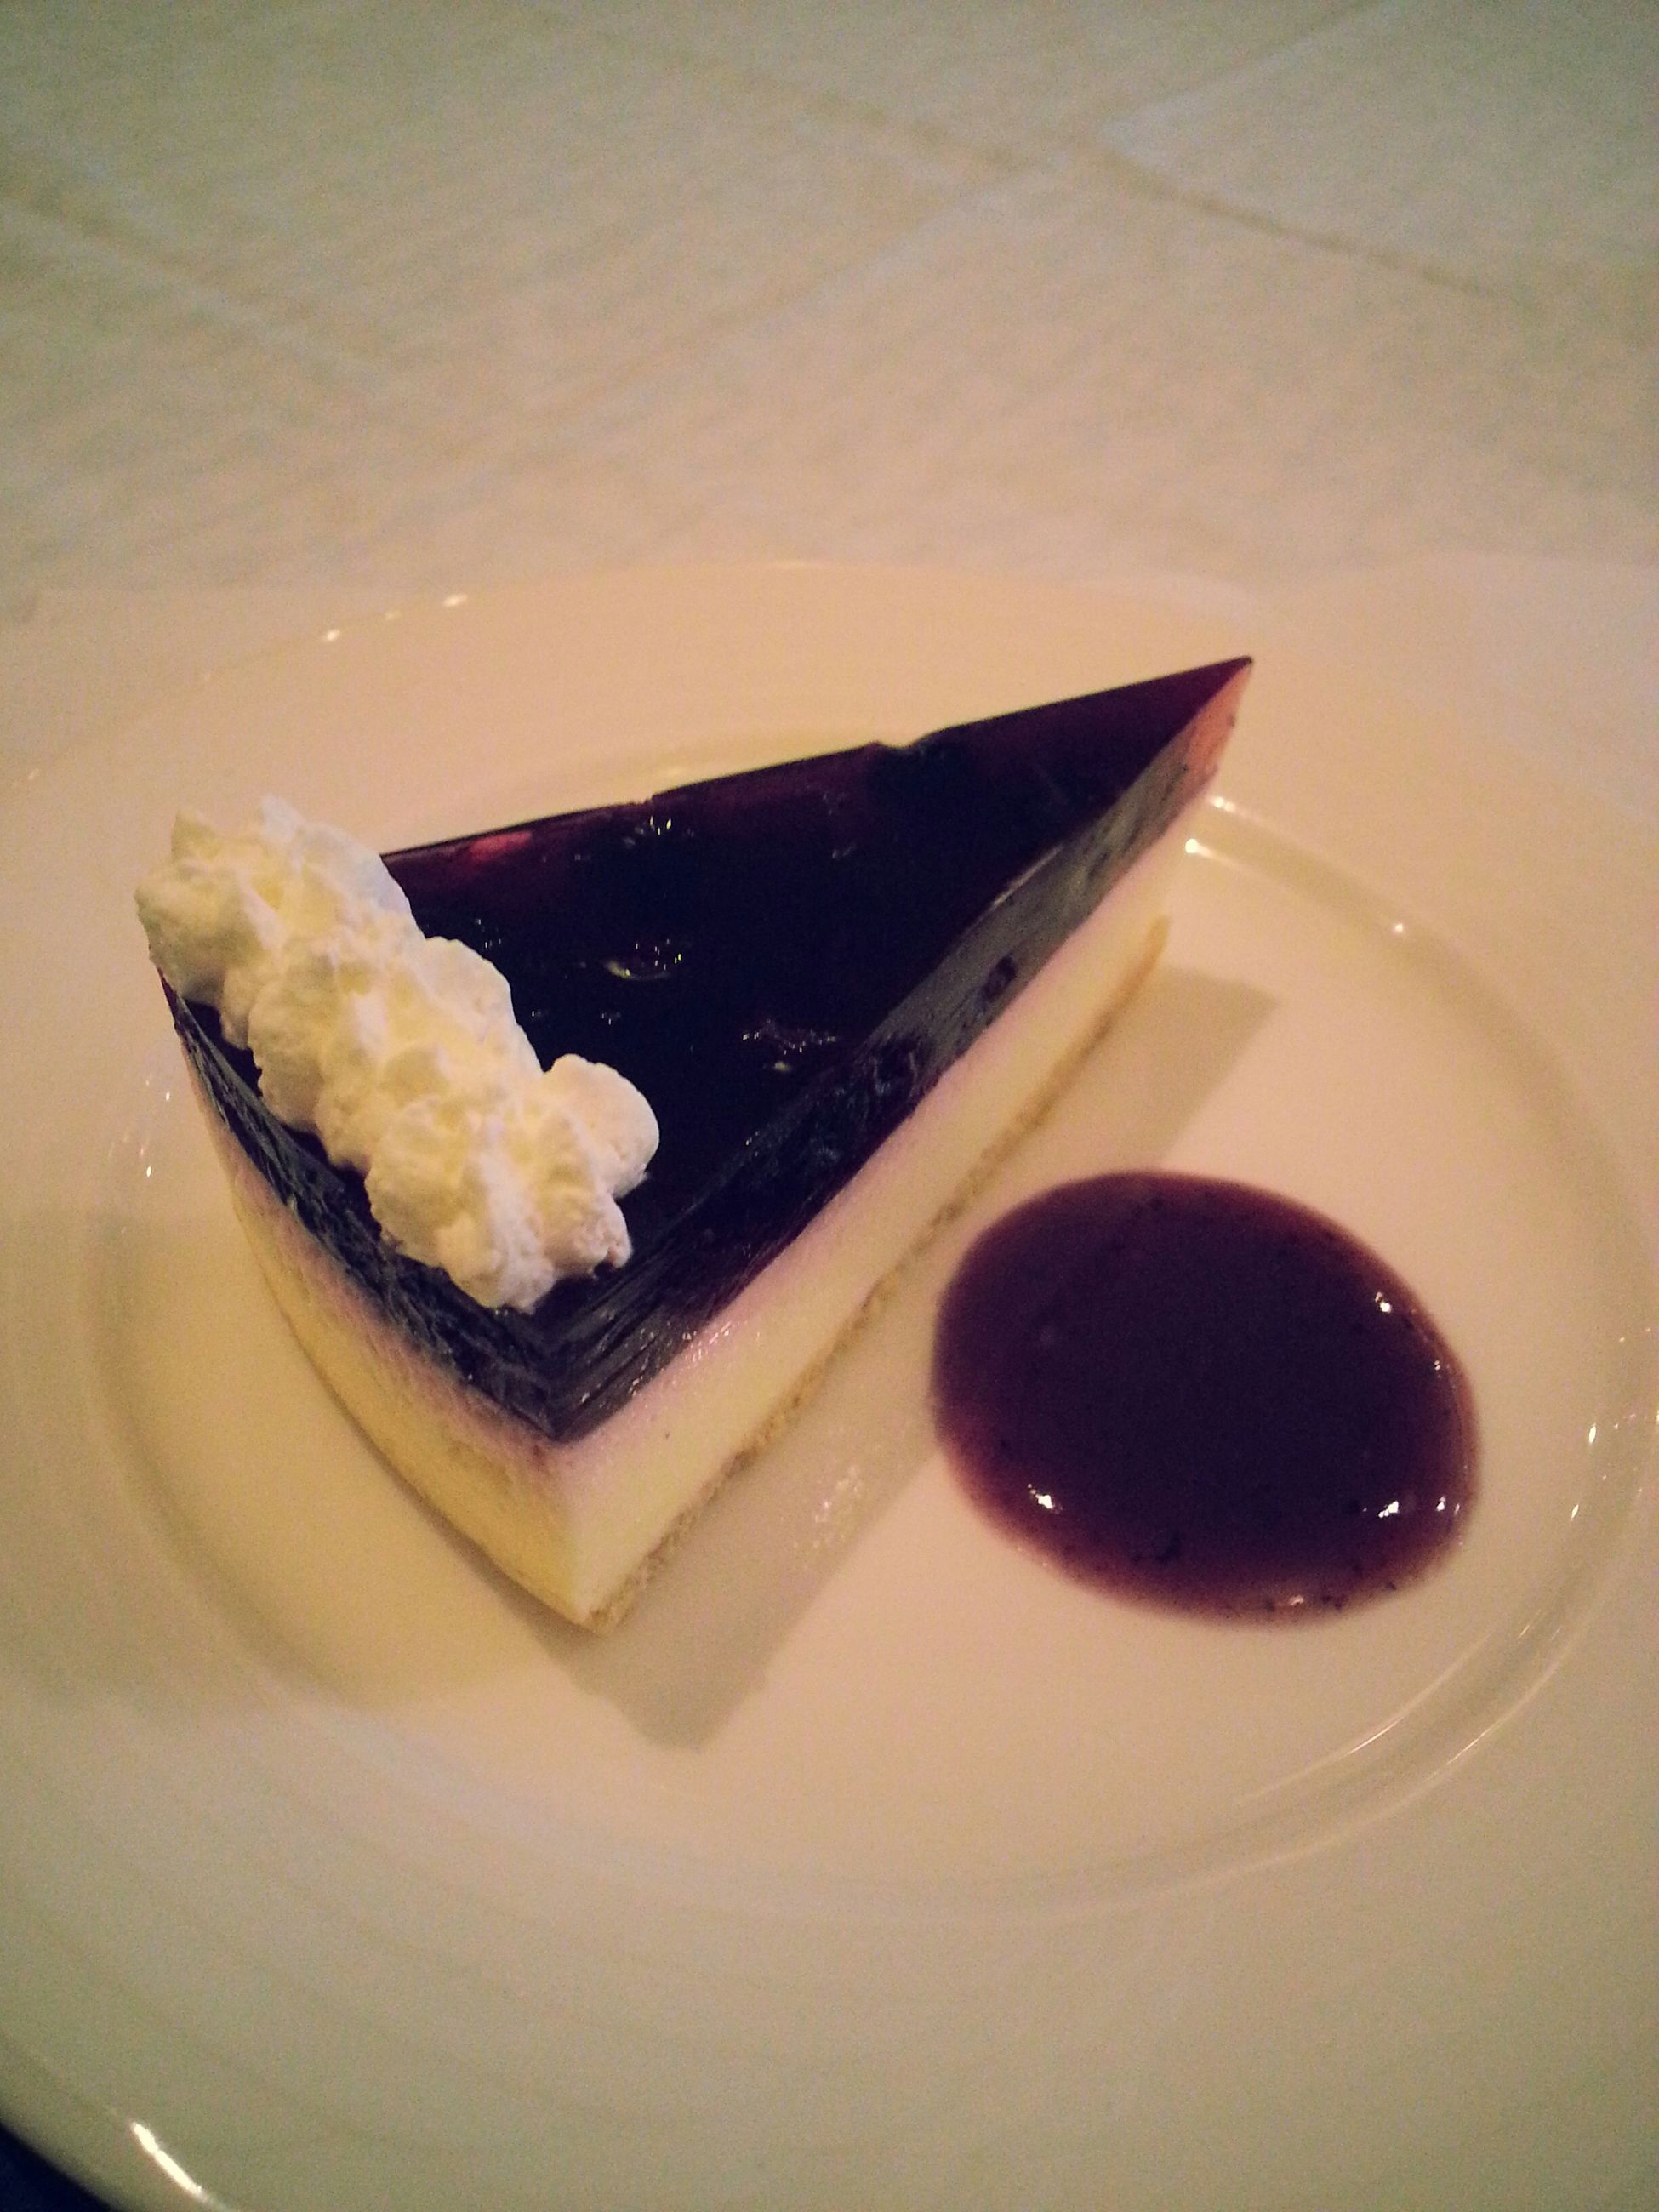 food and drink, indoors, food, sweet food, freshness, dessert, ready-to-eat, still life, plate, indulgence, table, cake, unhealthy eating, close-up, temptation, high angle view, serving size, chocolate, fork, no people